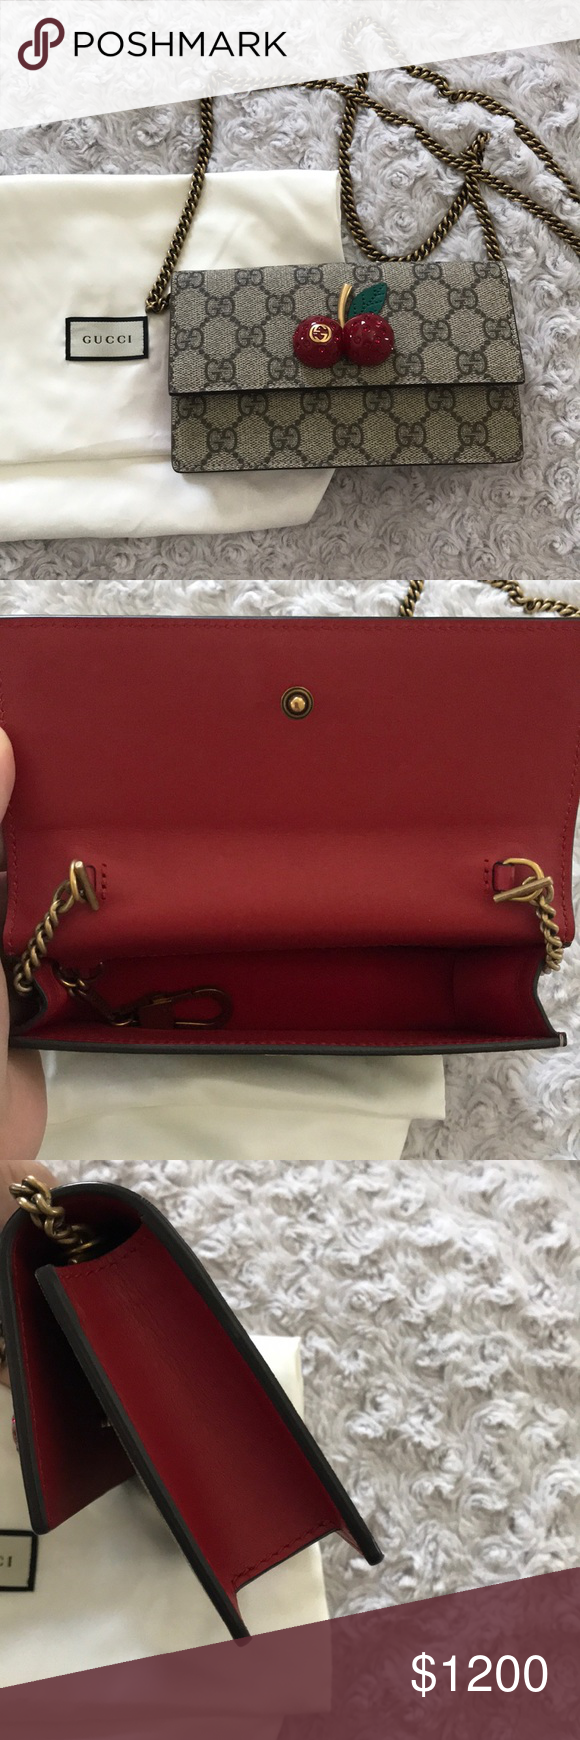 120466335 Gucci Supreme Cherry signature bag NWT New with tags. Includes receipt and  dust bag.